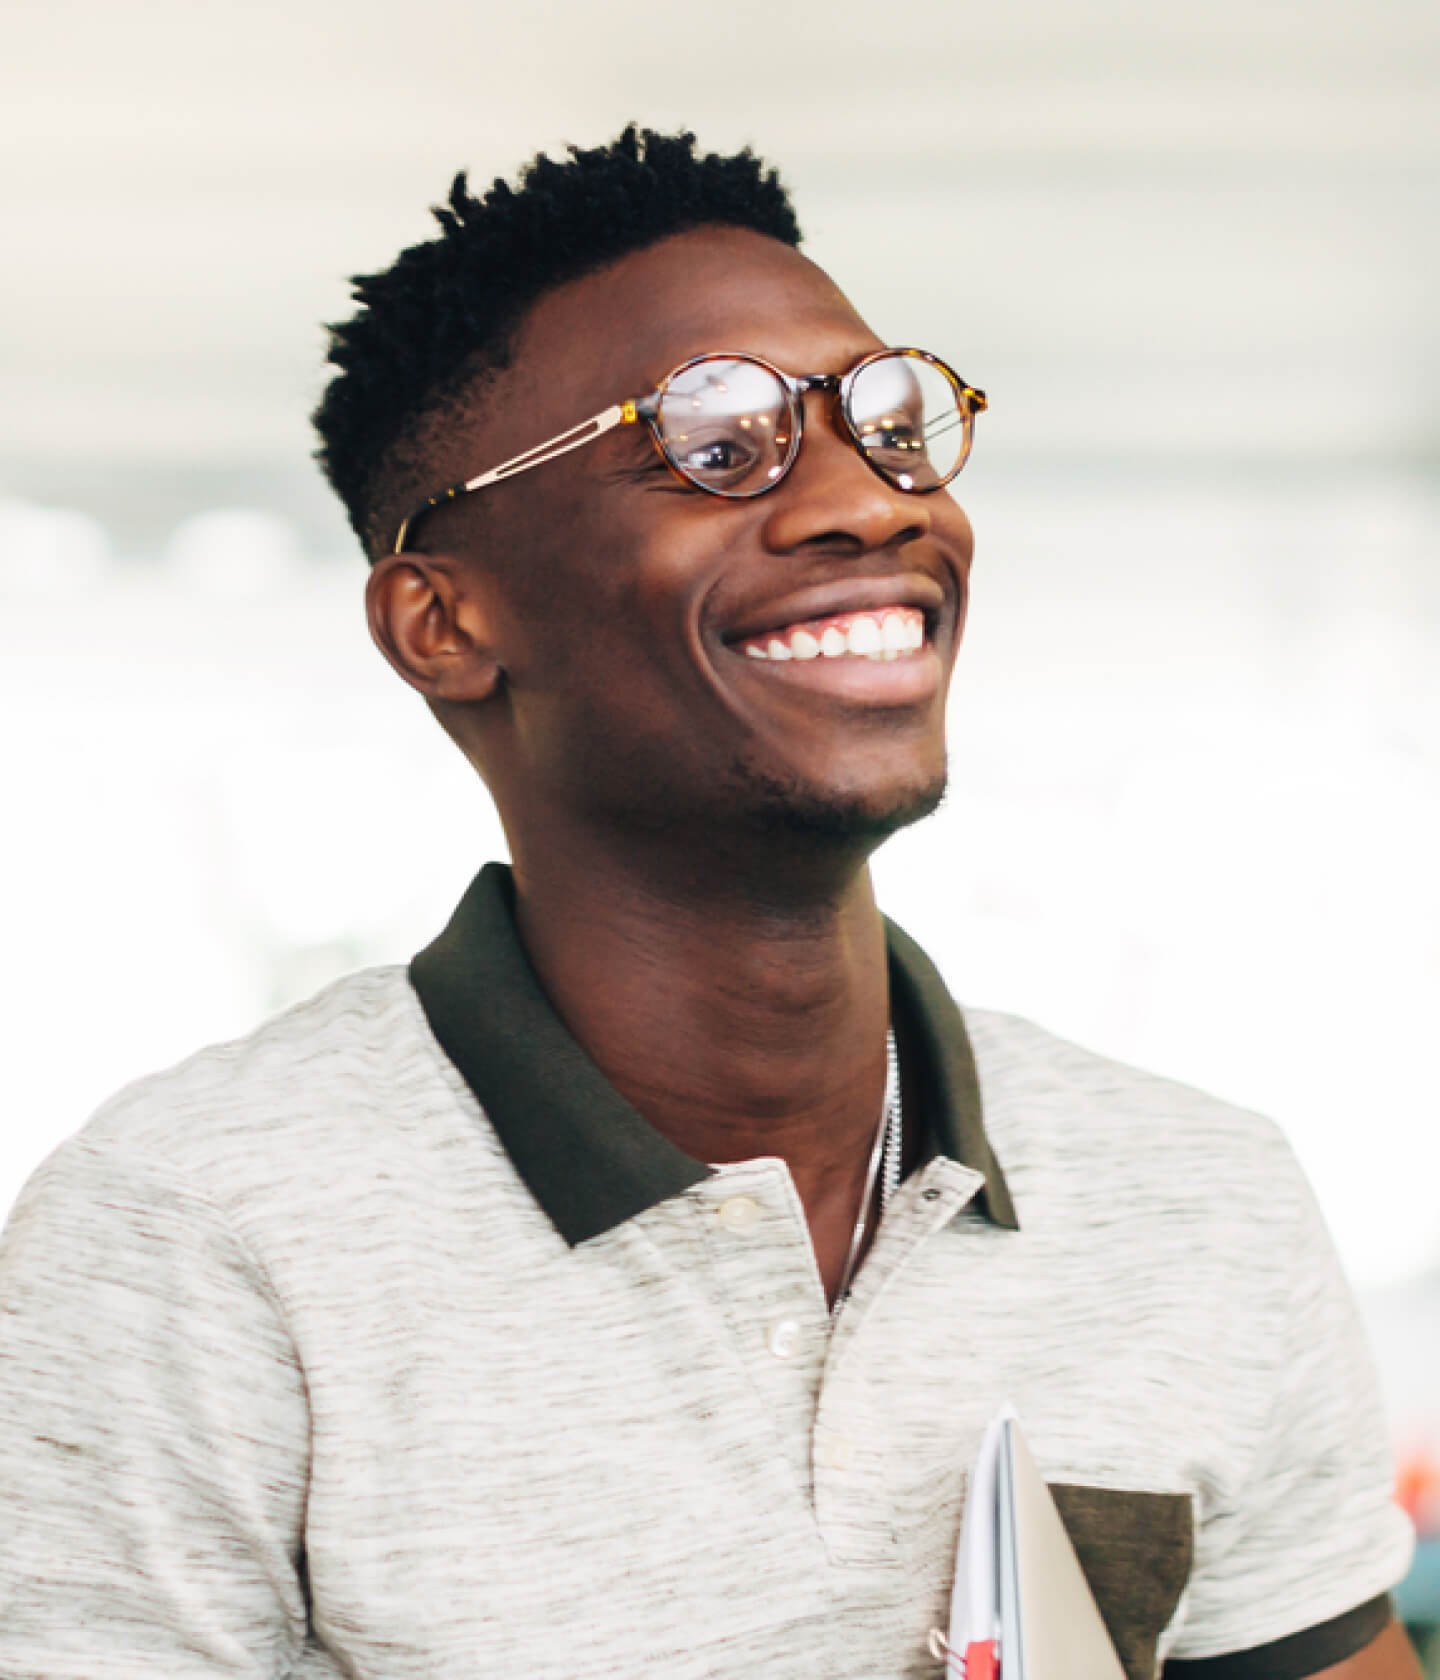 Photo of a young Black man with a big smile